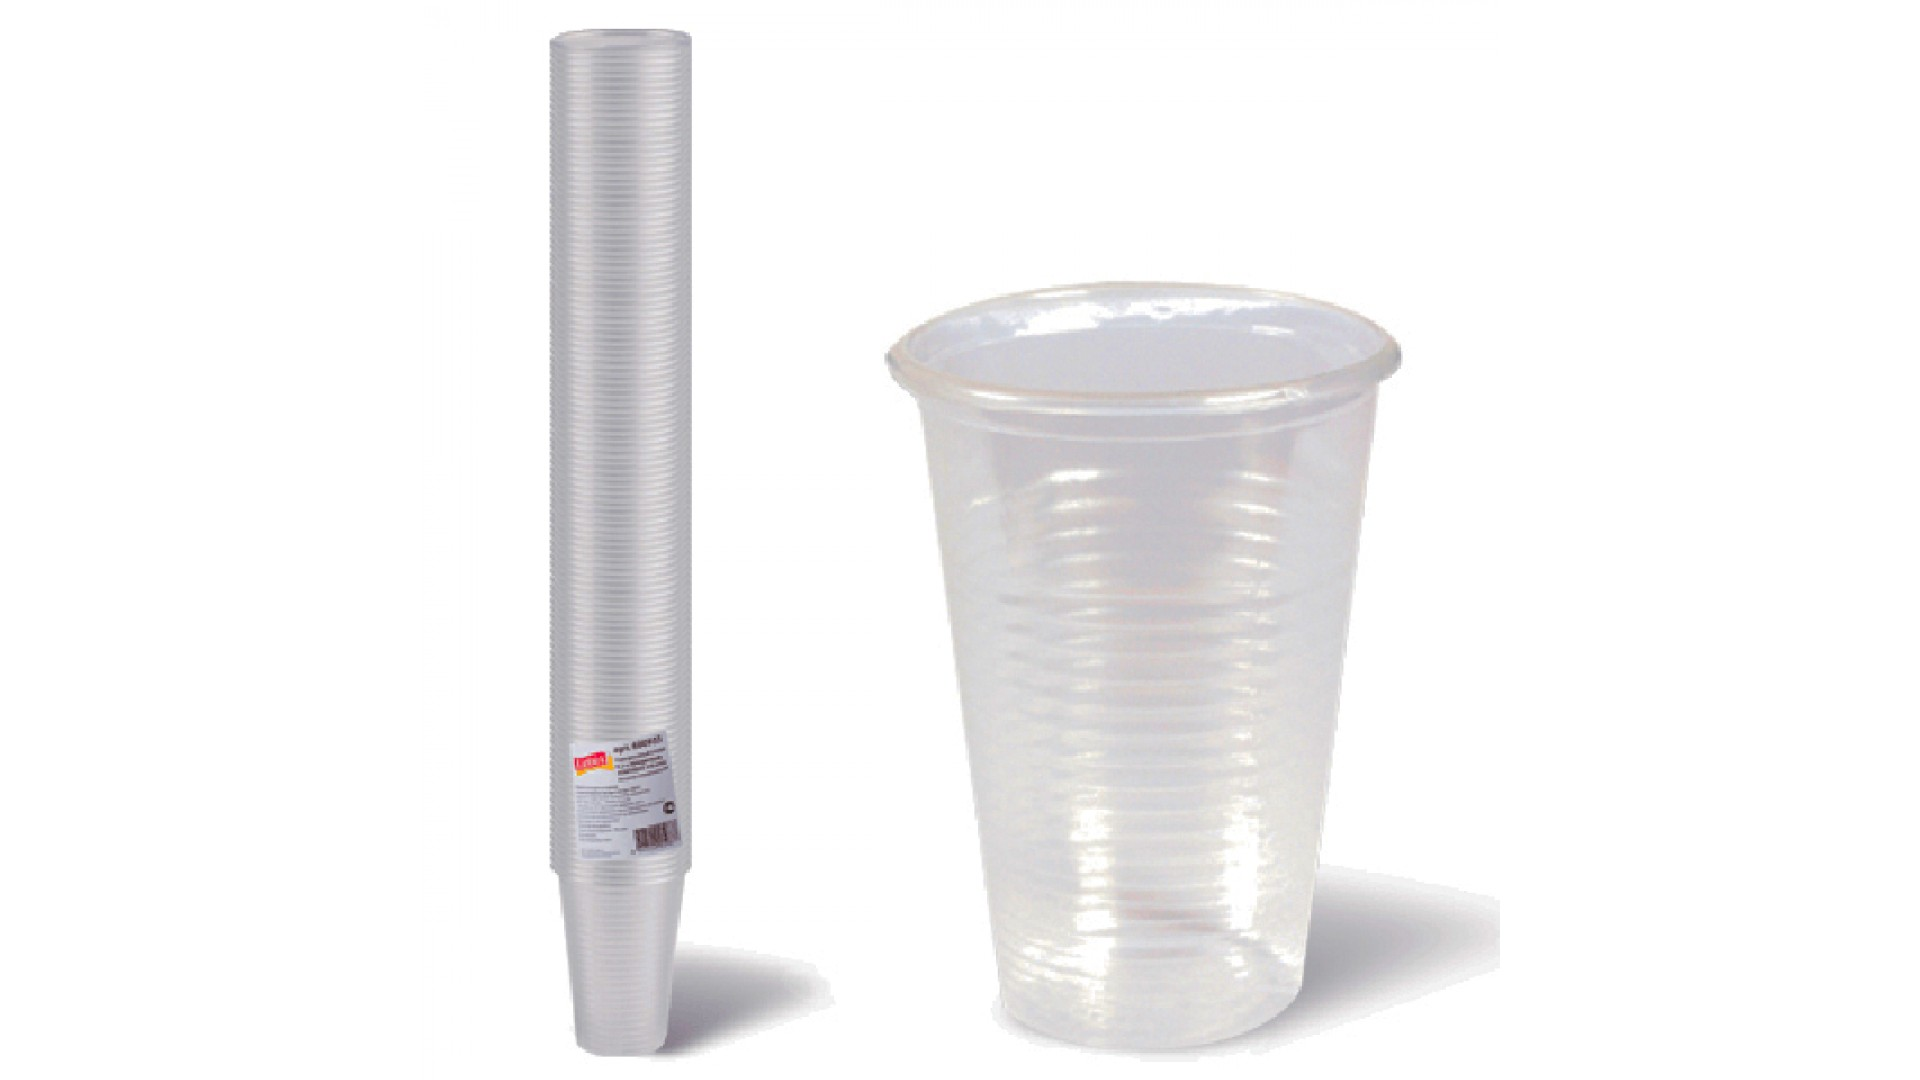 200ml disposable cups, PP 200pcs/pack.